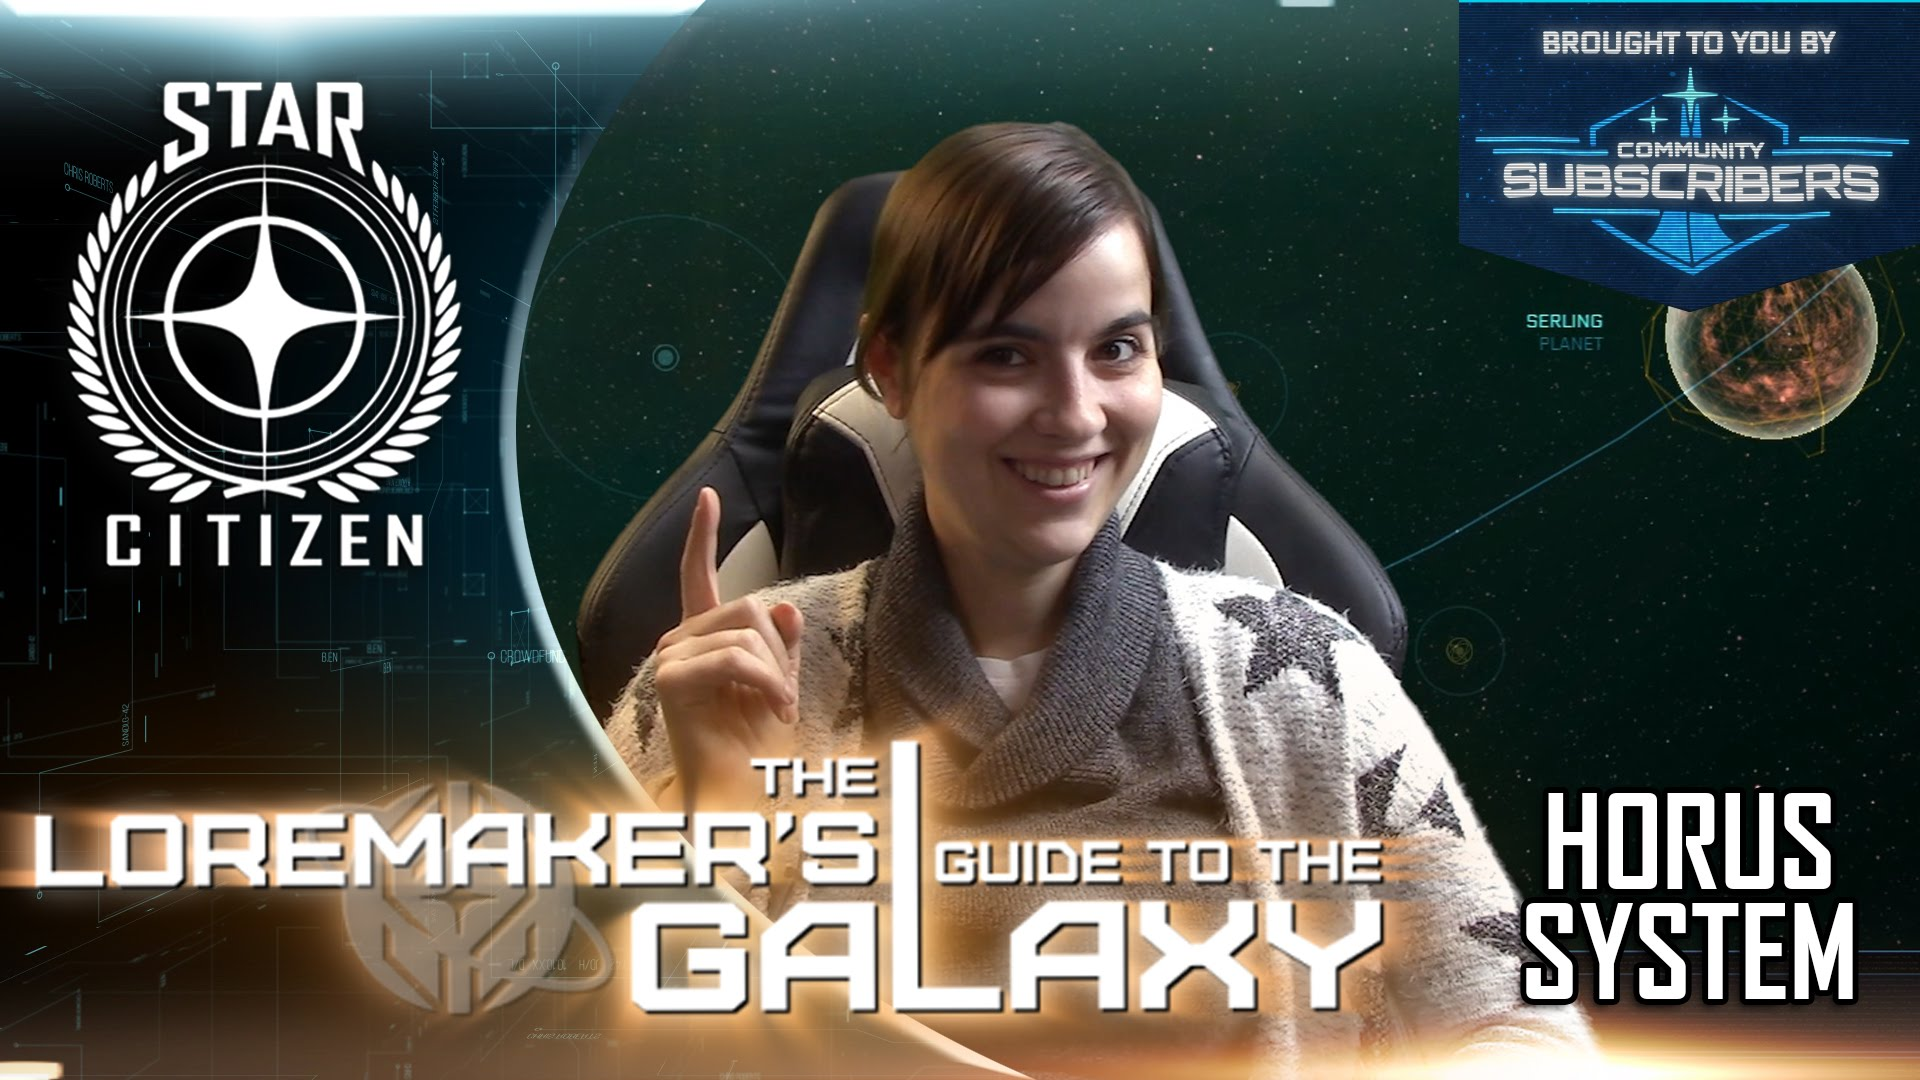 Star Citizen: Loremaker's Guide to the Galaxy - Horus System